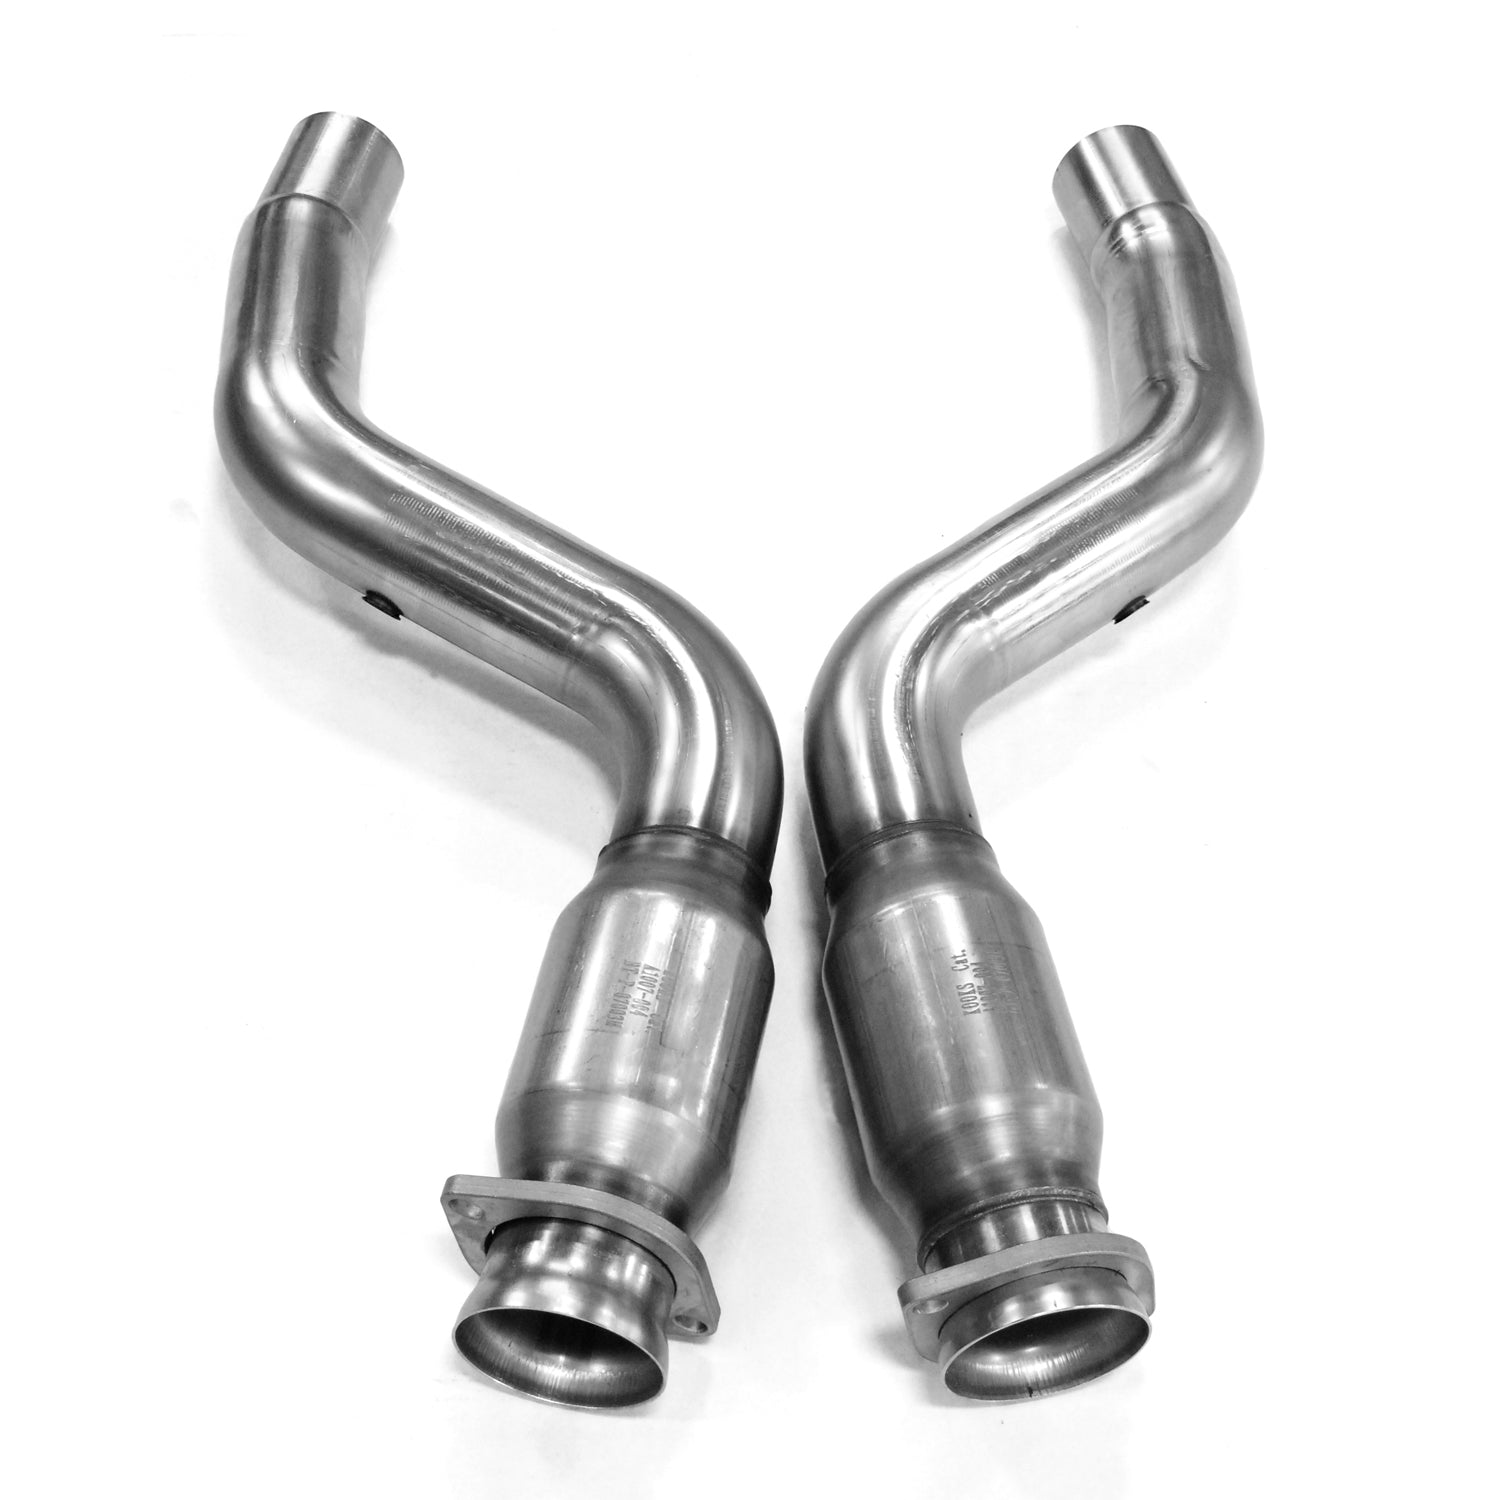 "2005+ Dodge Magnum/Charger/Challenger and Chrysler 300C SRT8/Hellcat 3"" x OEM"" Catted Connection Pipes"